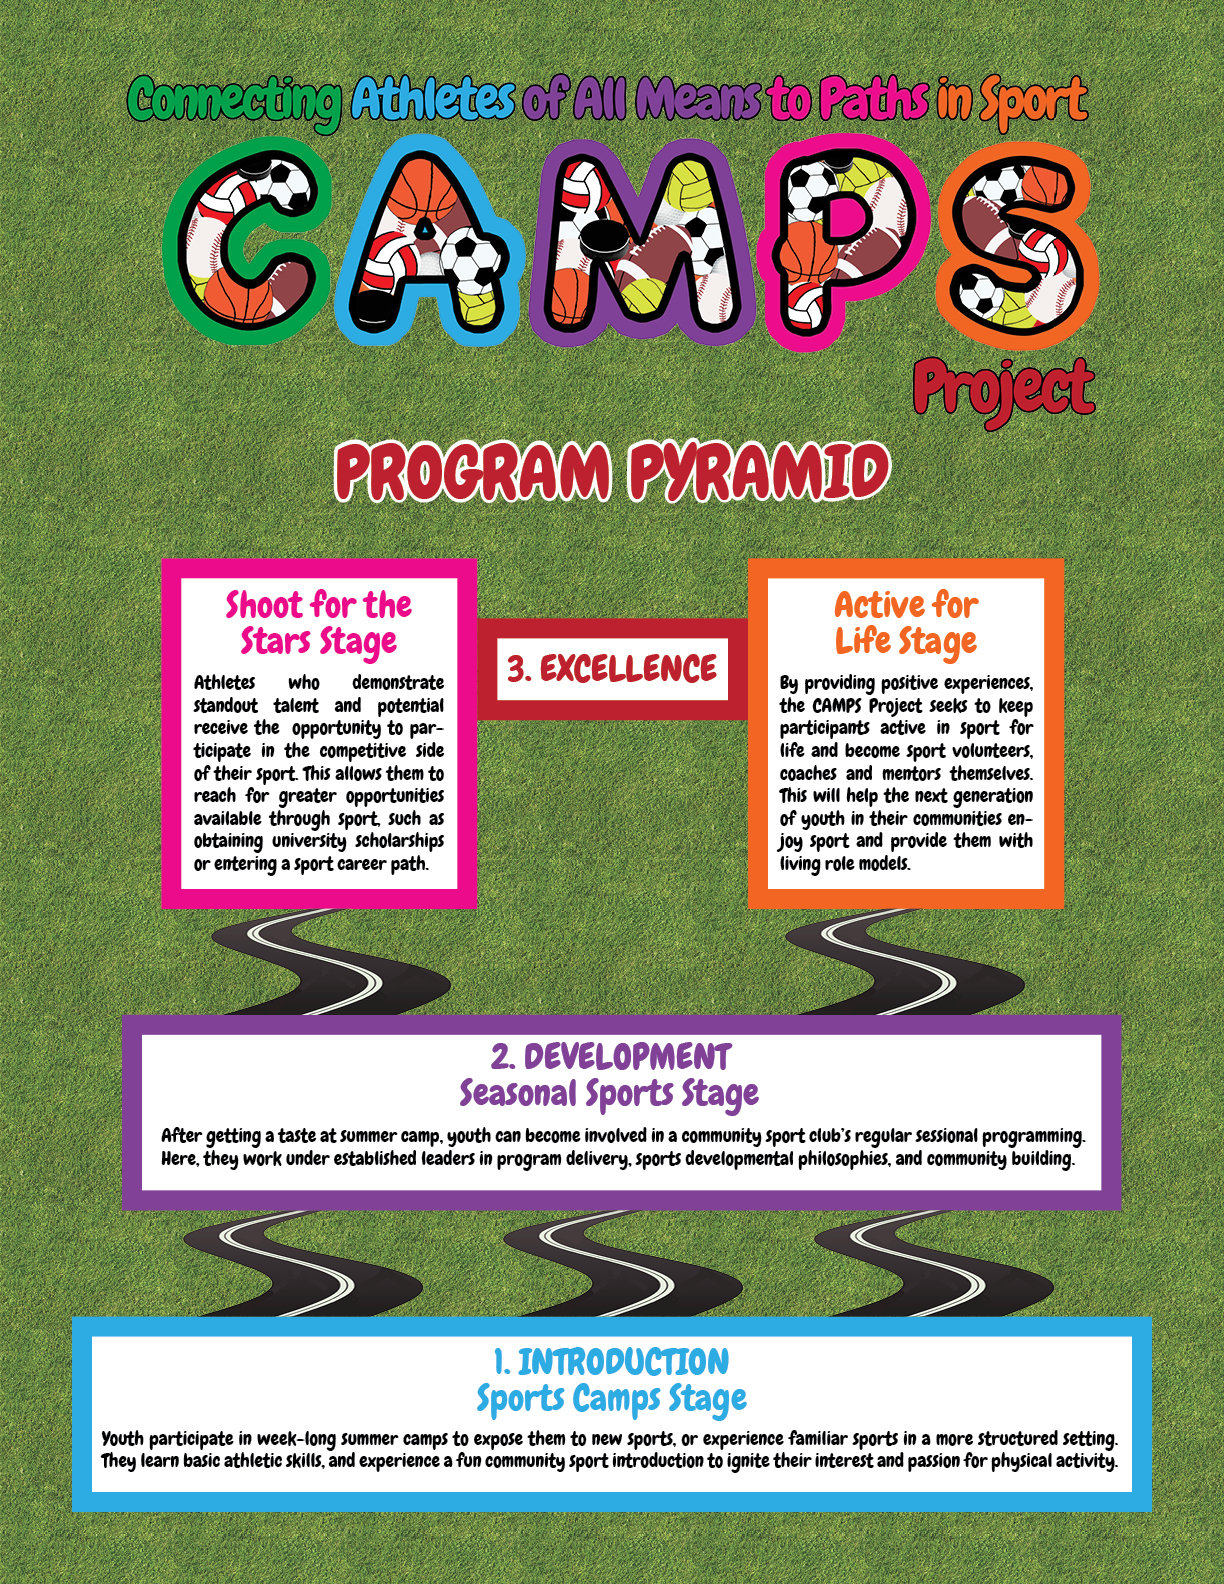 CAMPS Project program pyramid